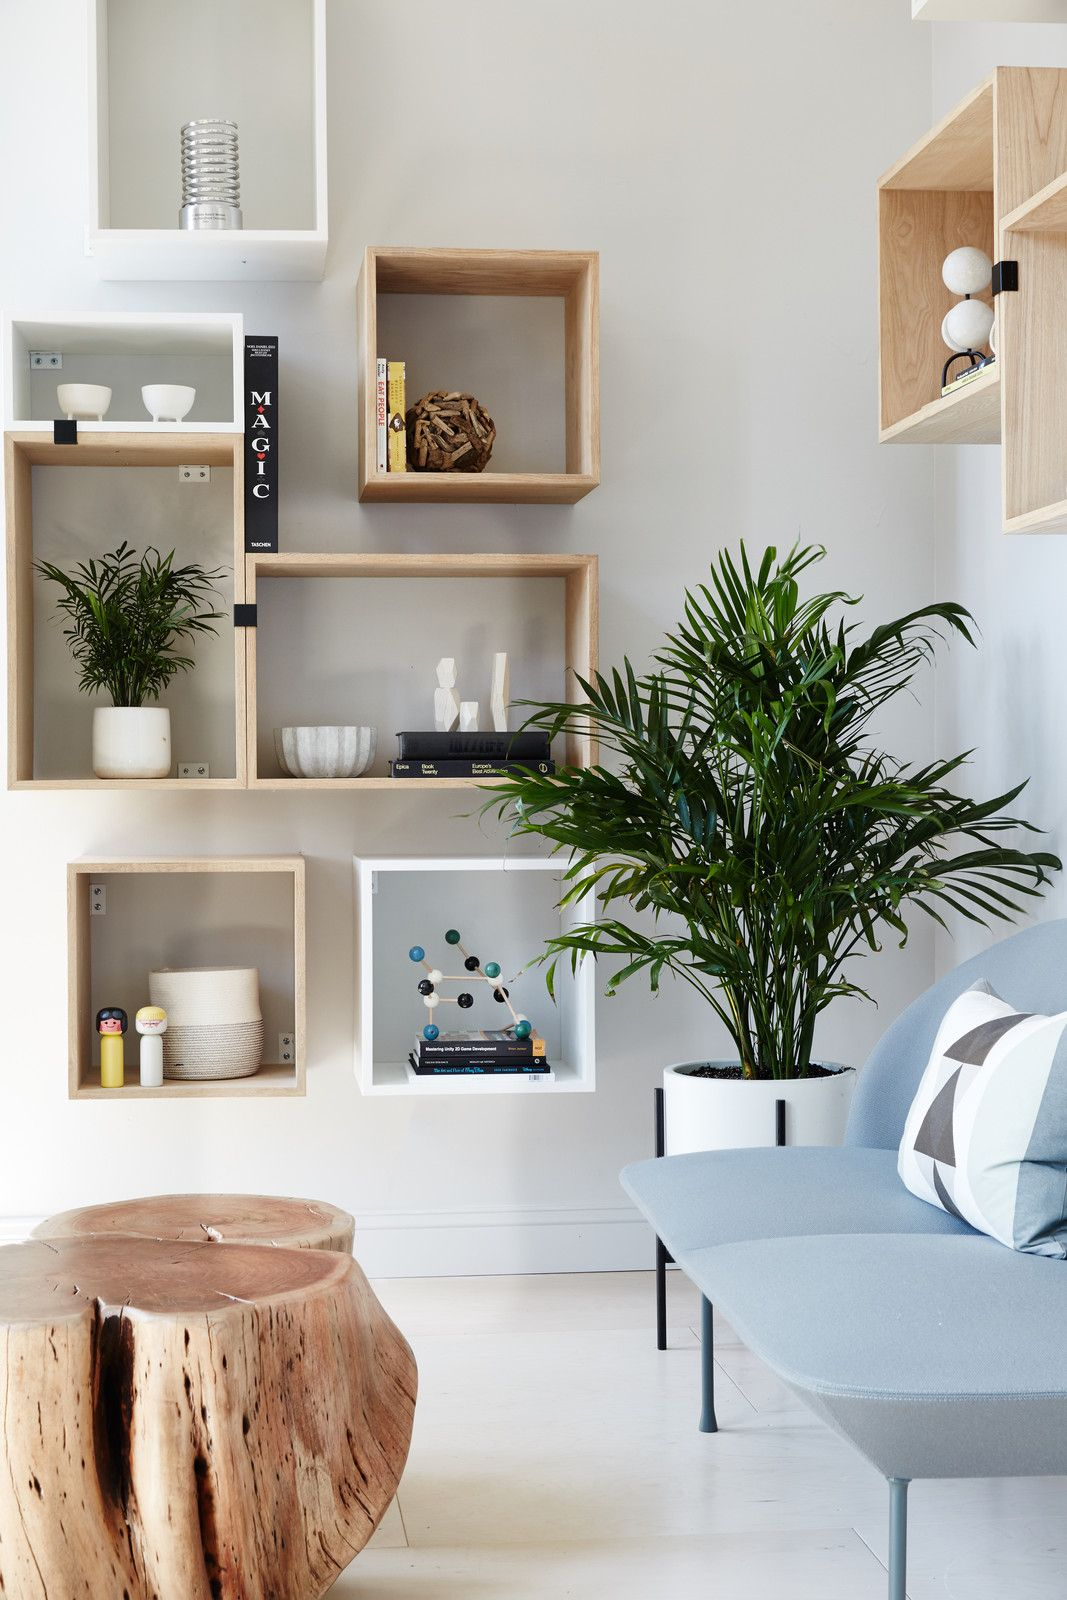 Muuto Stacked Shelving creates a flexible and